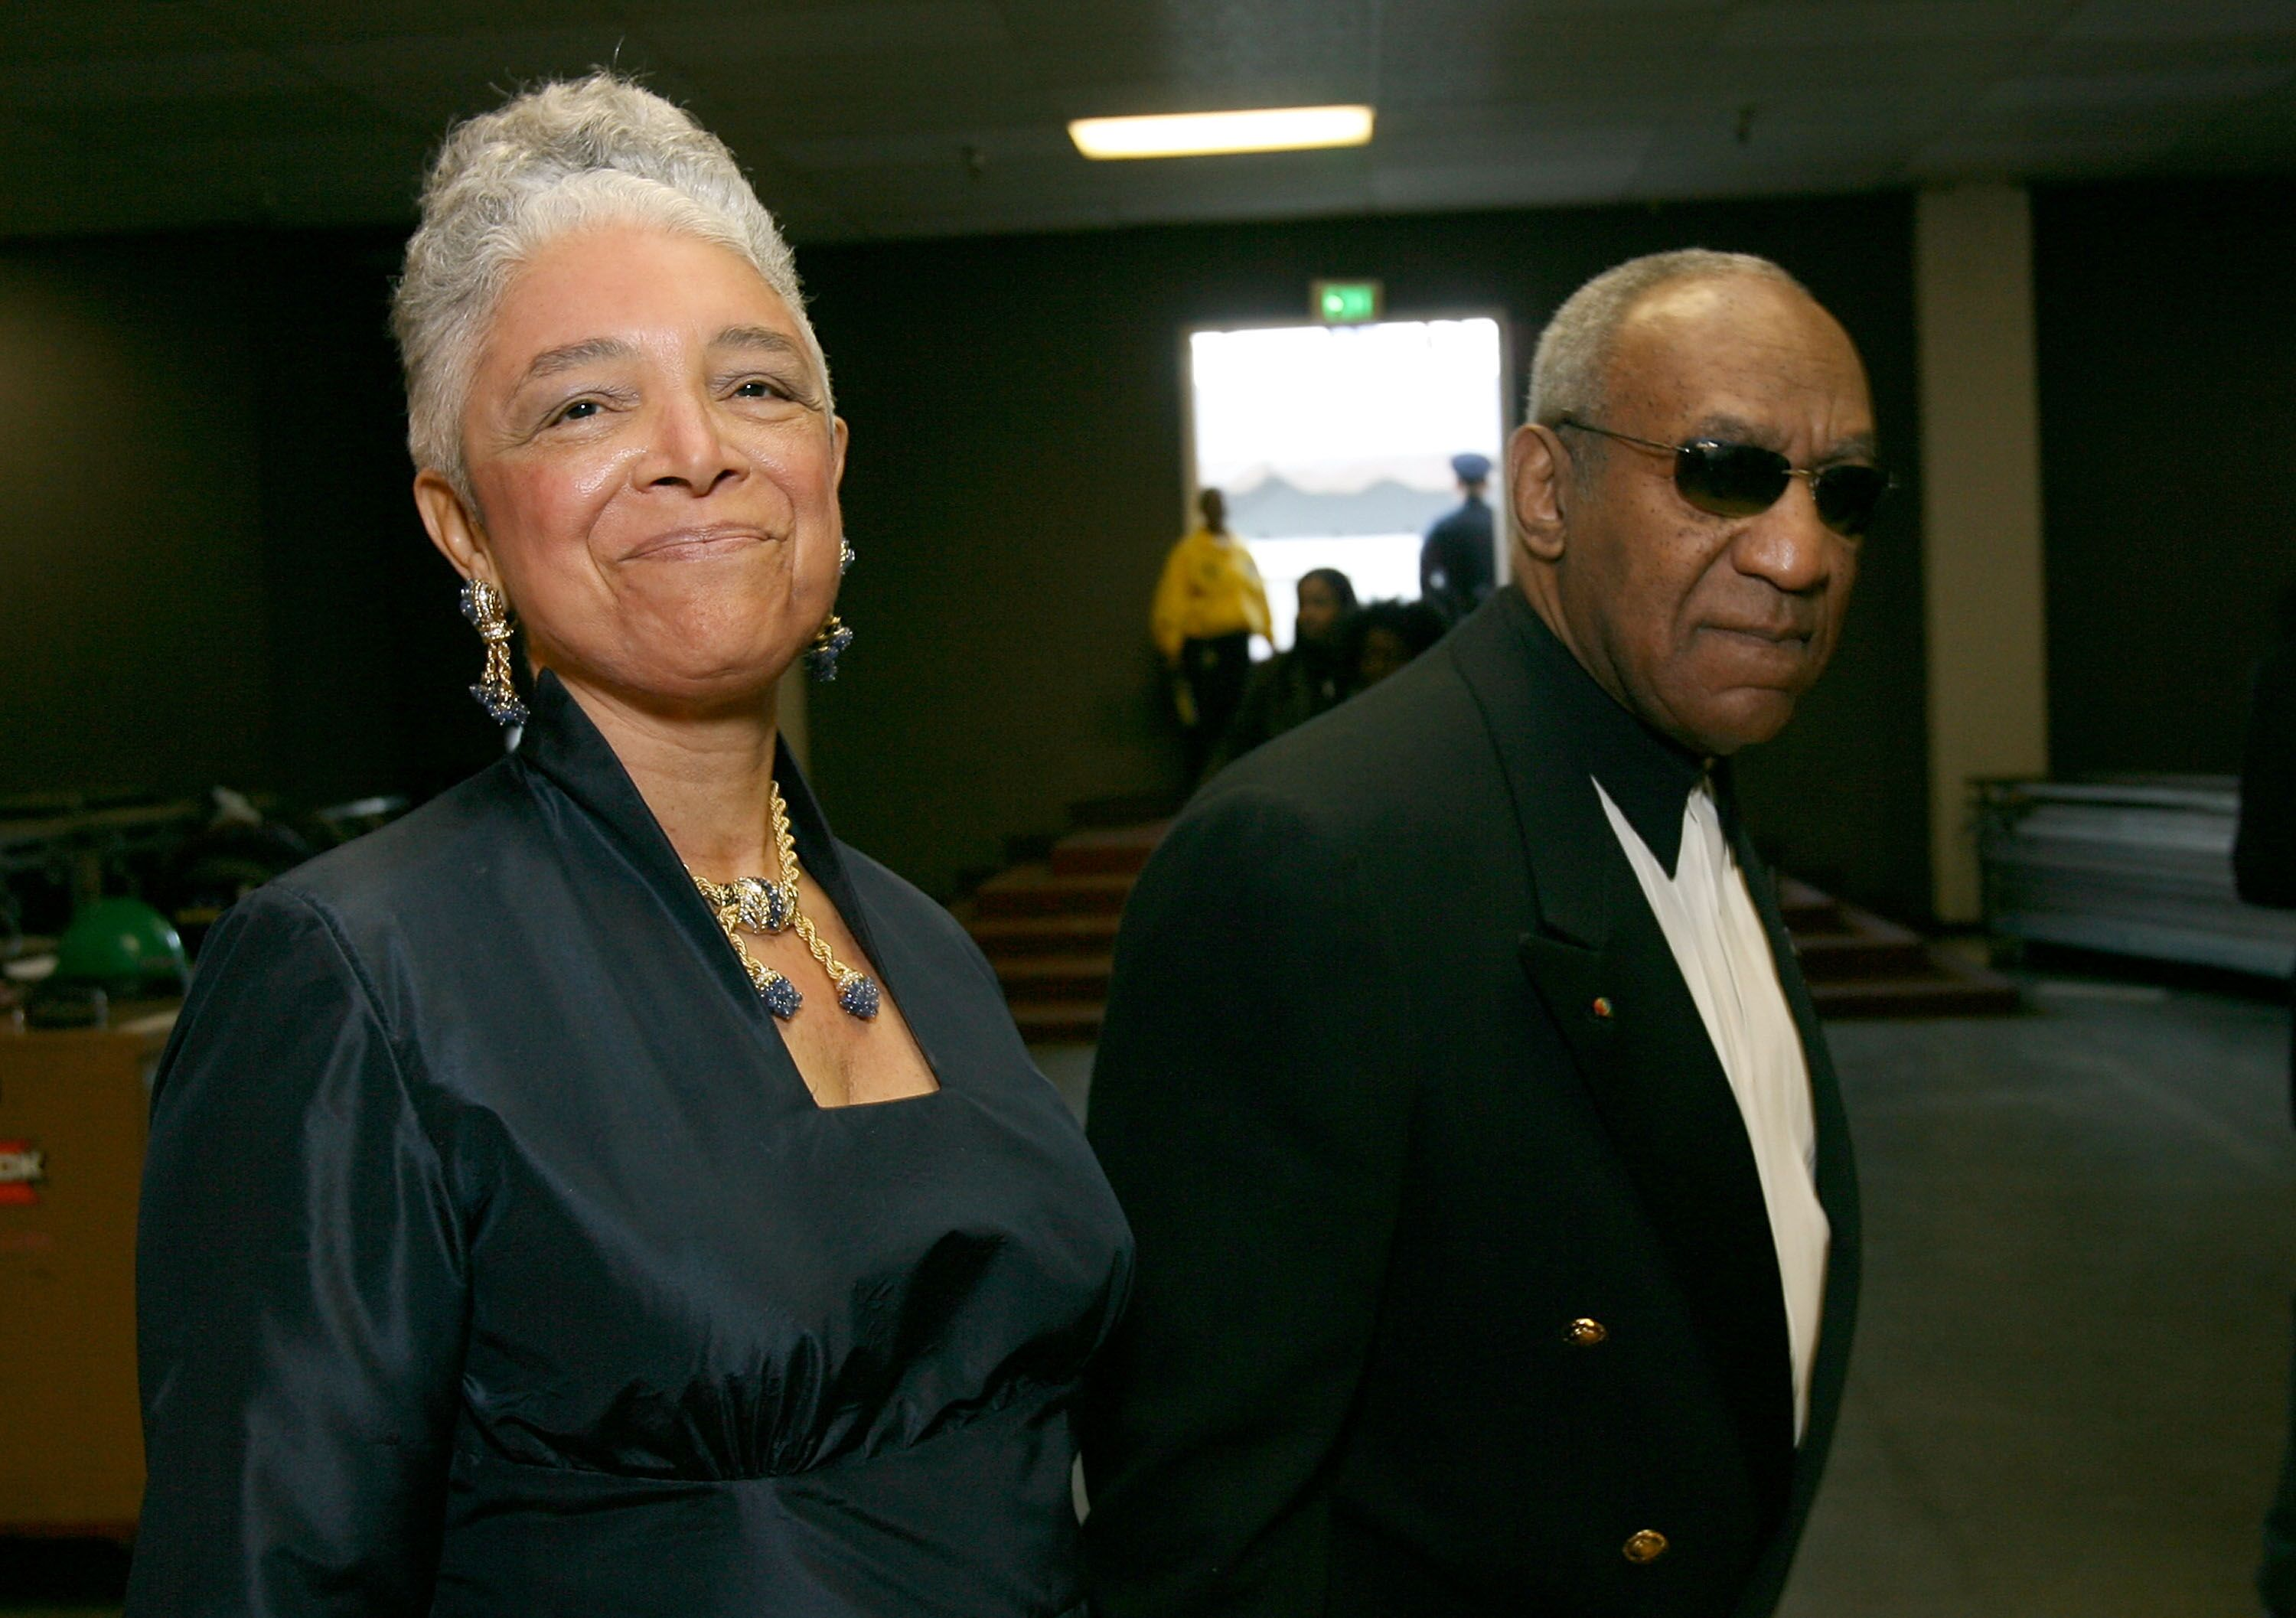 Bill Cosby and his wife, Camille at the NAACP Image Awards in Los Angeles, California on March 2, 2007. | Photo: Getty Images